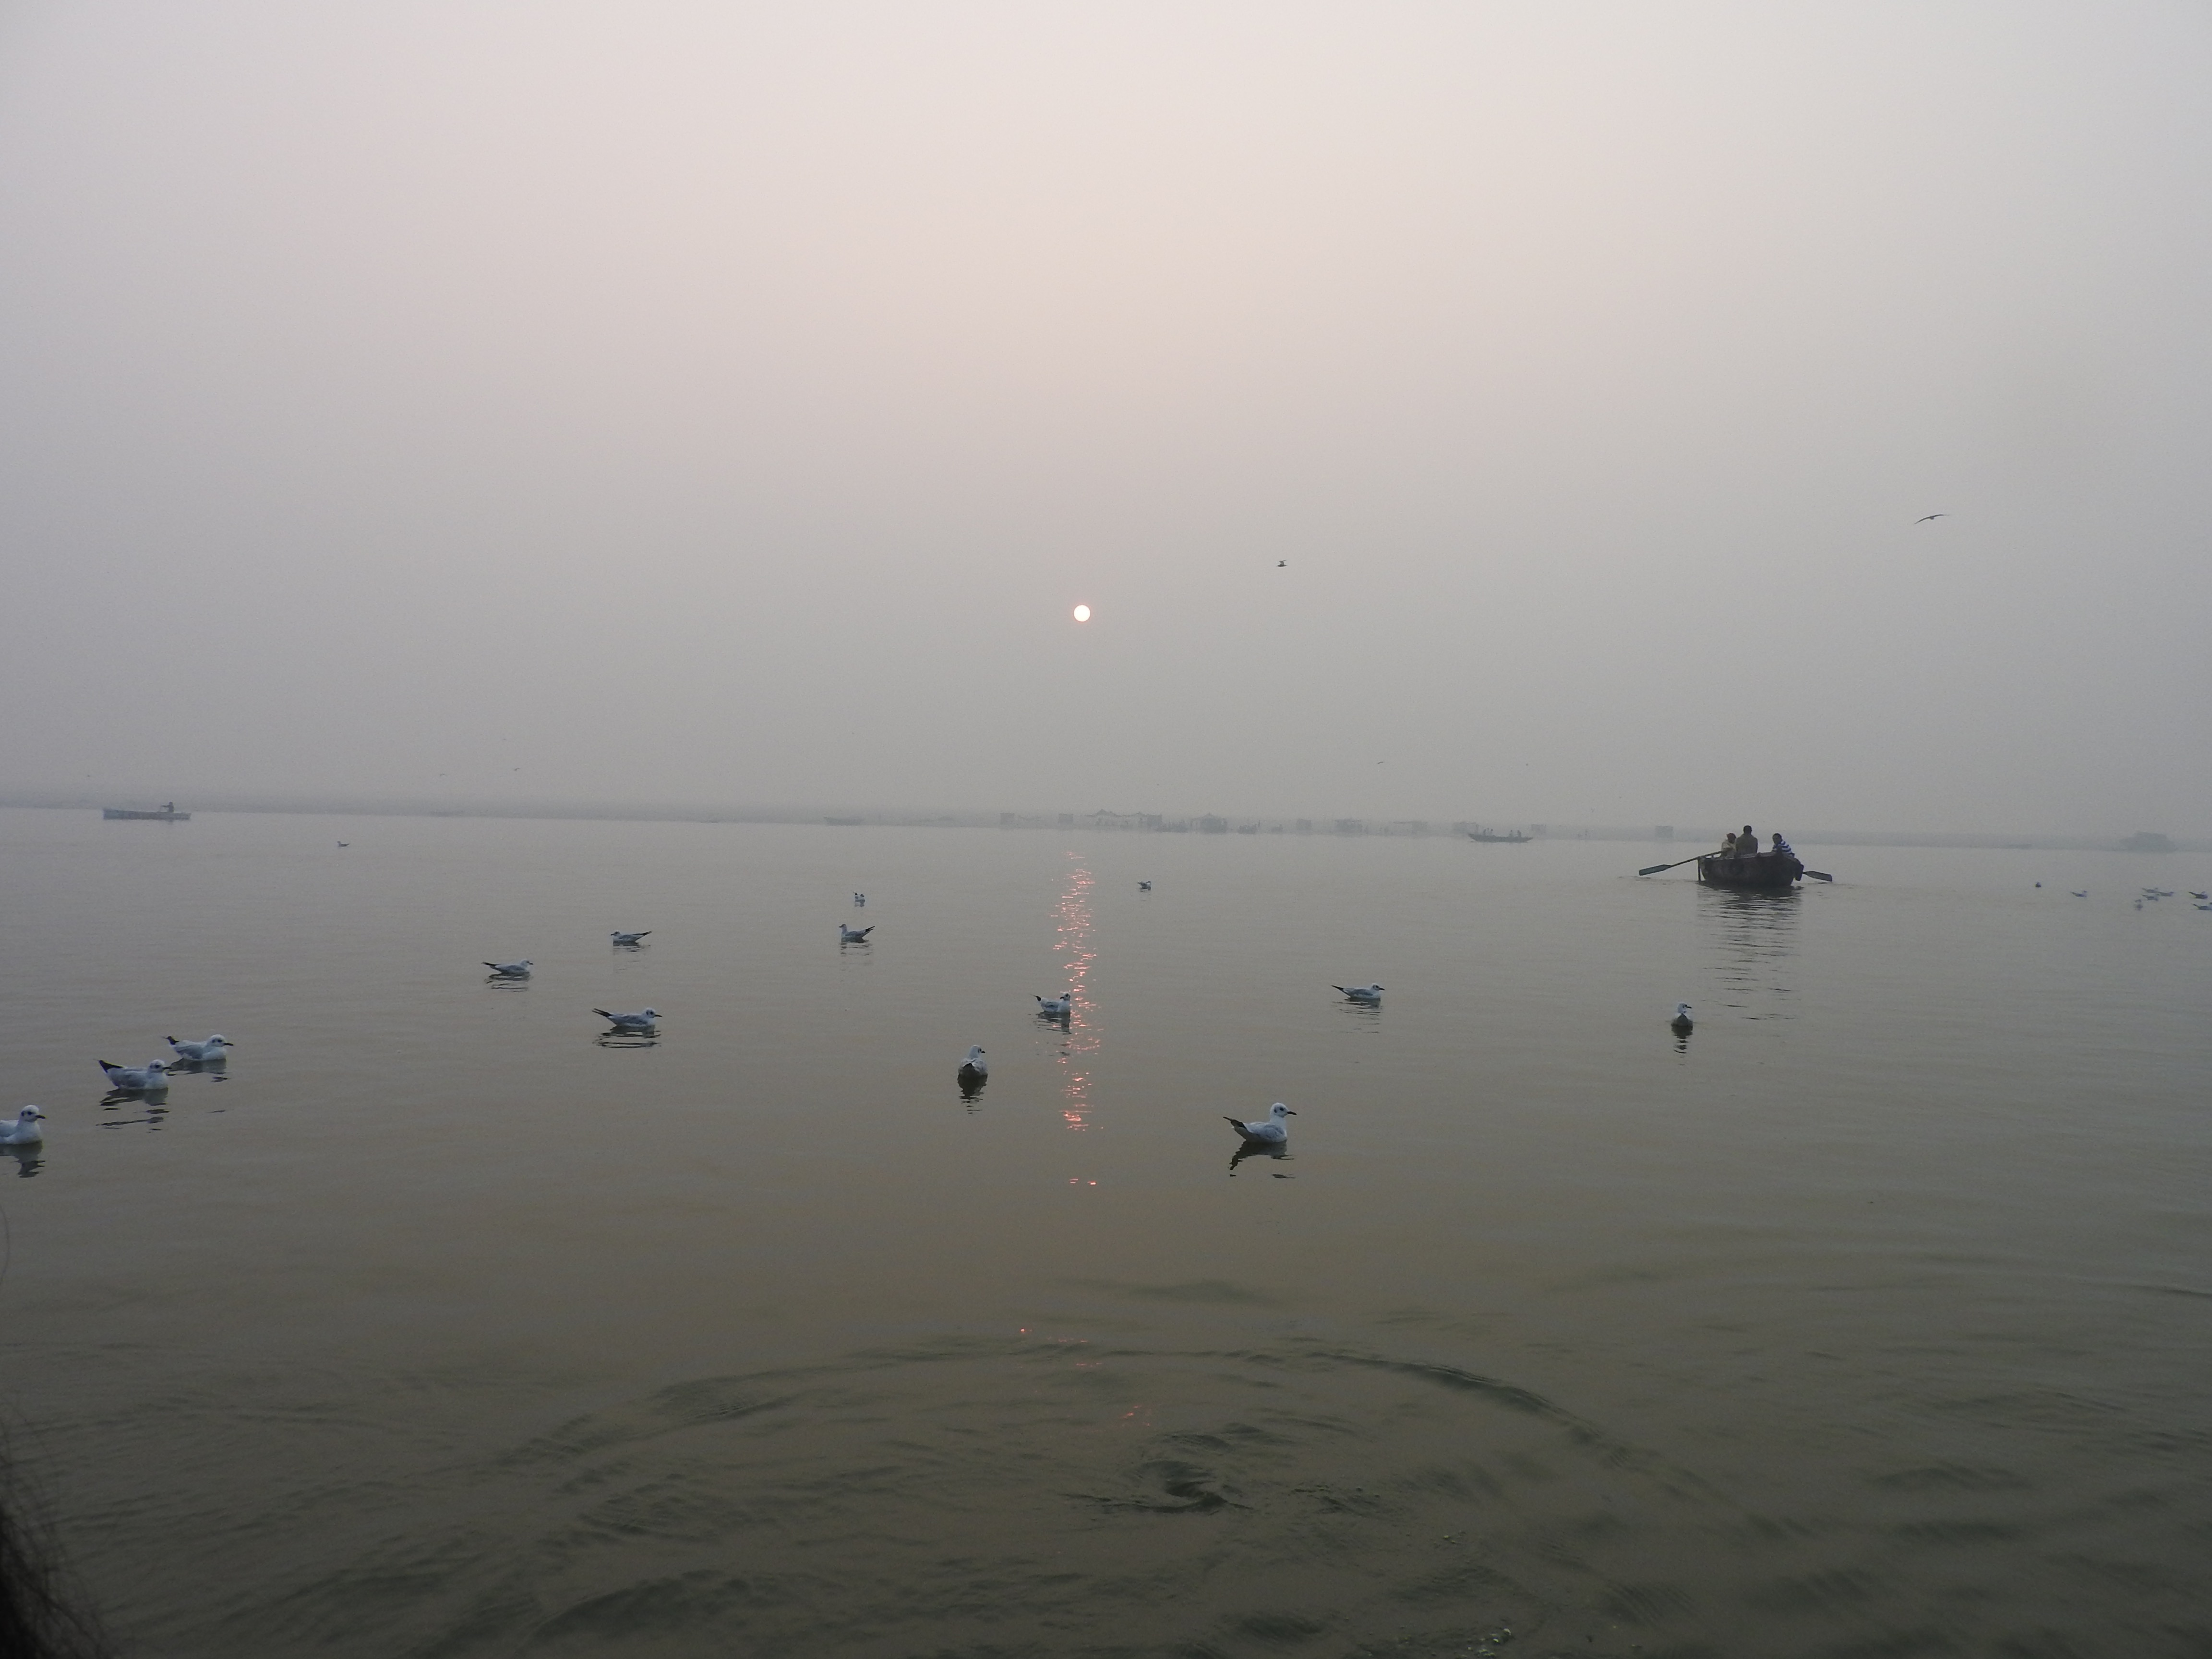 World religions a journey to explore religions peoples accordingly many different ceremonies are held on the banks of the ganges many also come here to bathe to cleanse their soul biocorpaavc